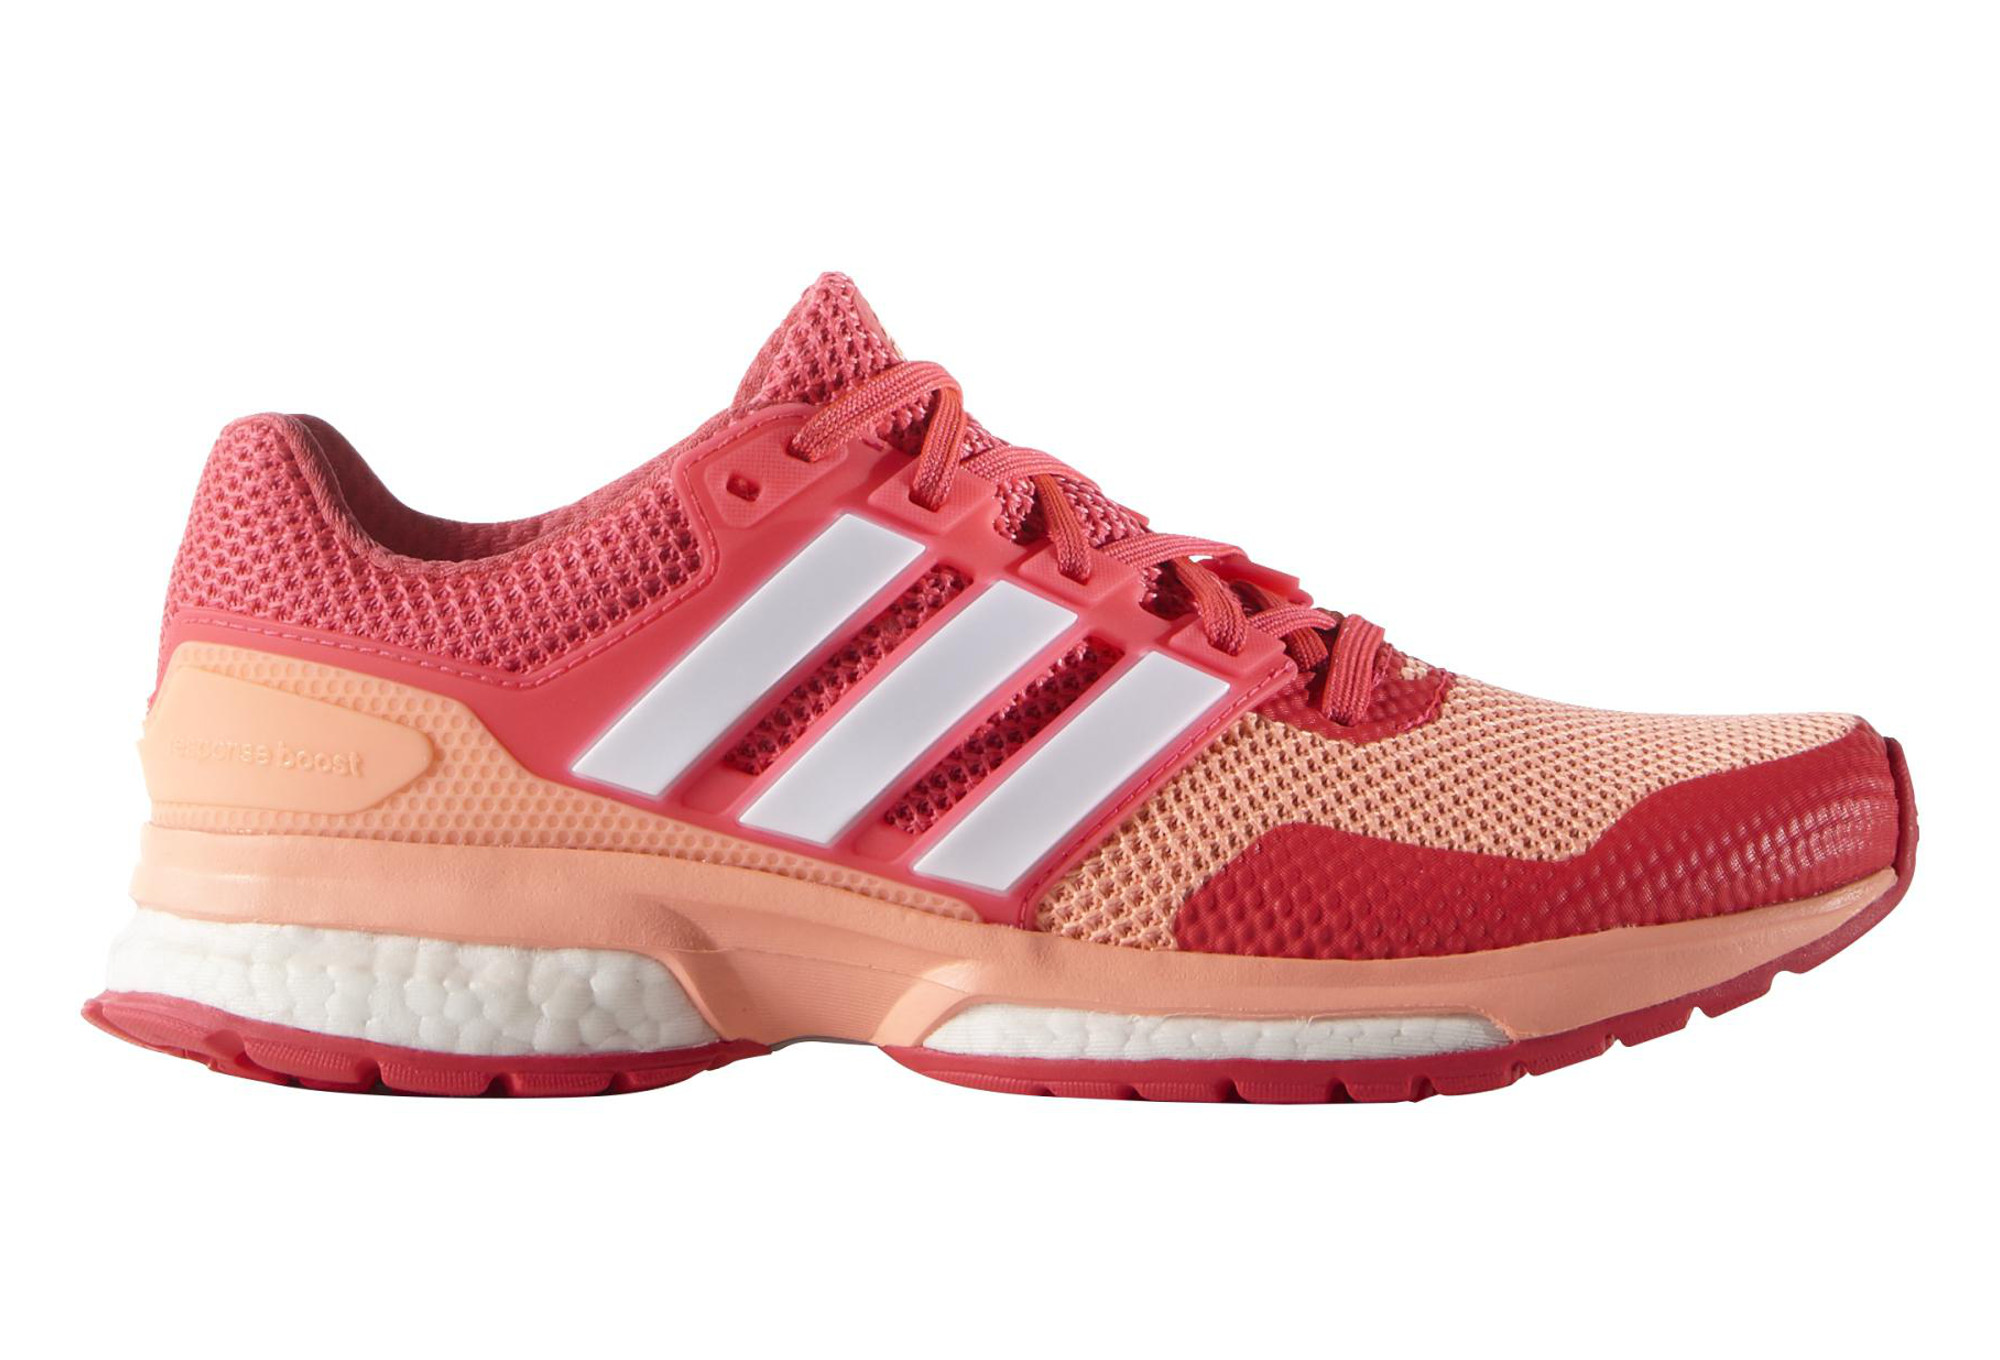 undefeated x designer fashion exclusive shoes adidas RESPONSE BOOST 2 Pair of Shoes Pink Women